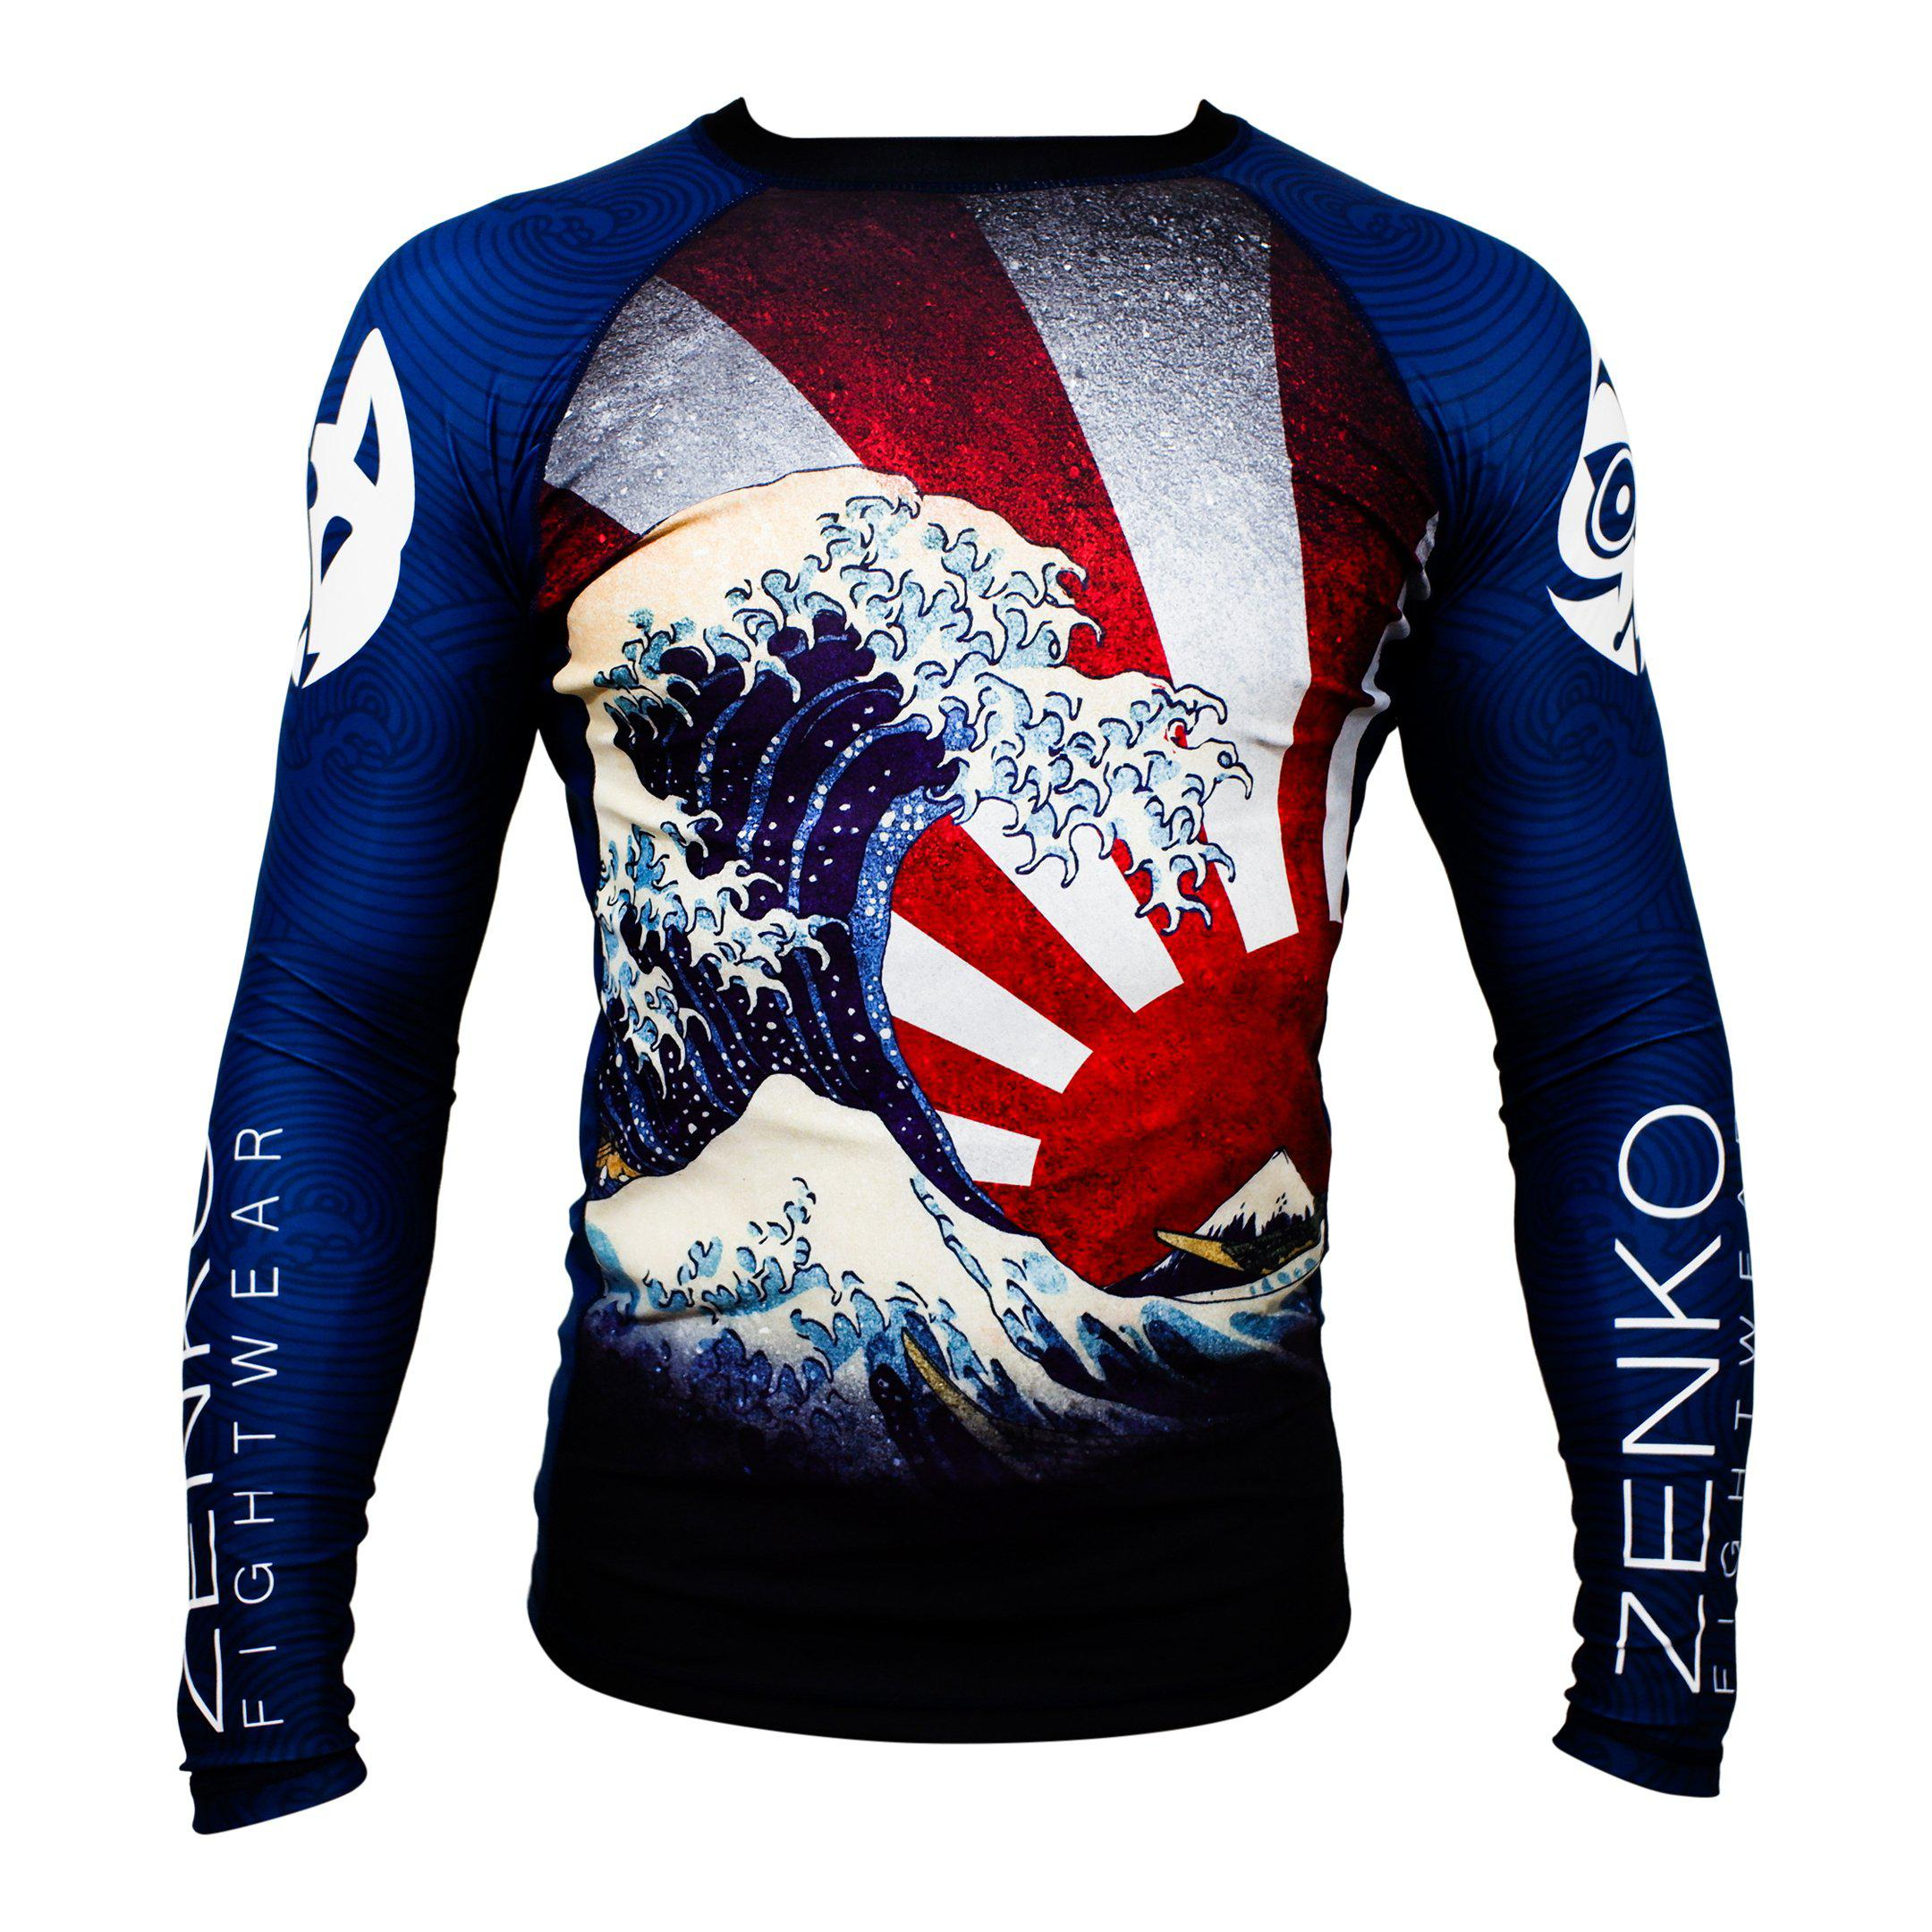 Zenko Fightwear The Great Wave Rashguard Front